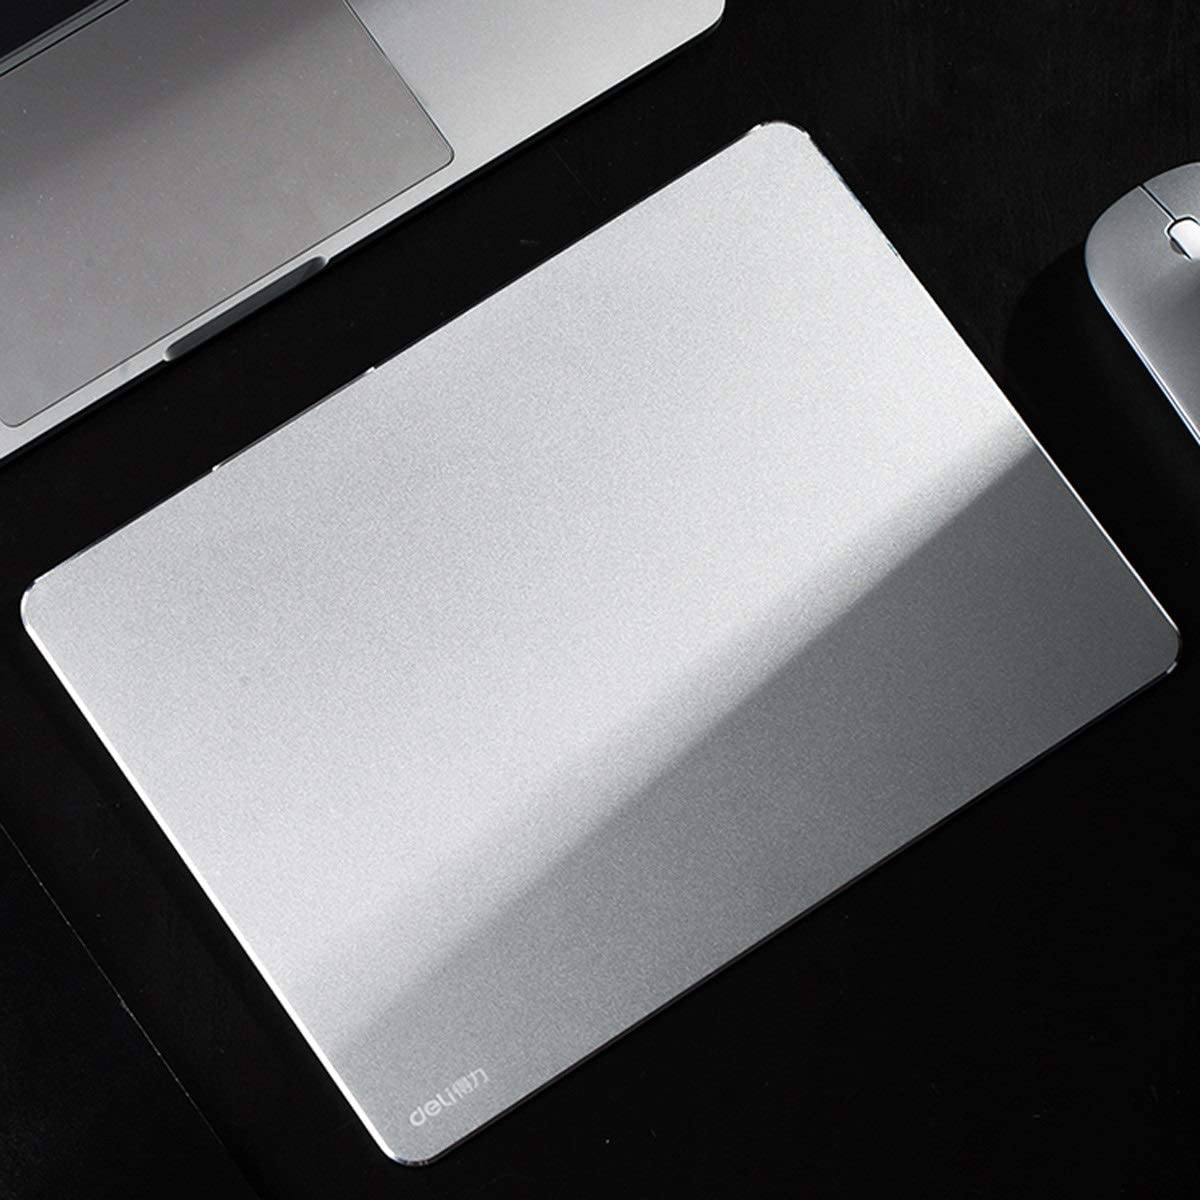 Metal Non-Slip Mouse Pad Office Game Aluminum Mouse Pad Silver Mouse Pad Color : Silver